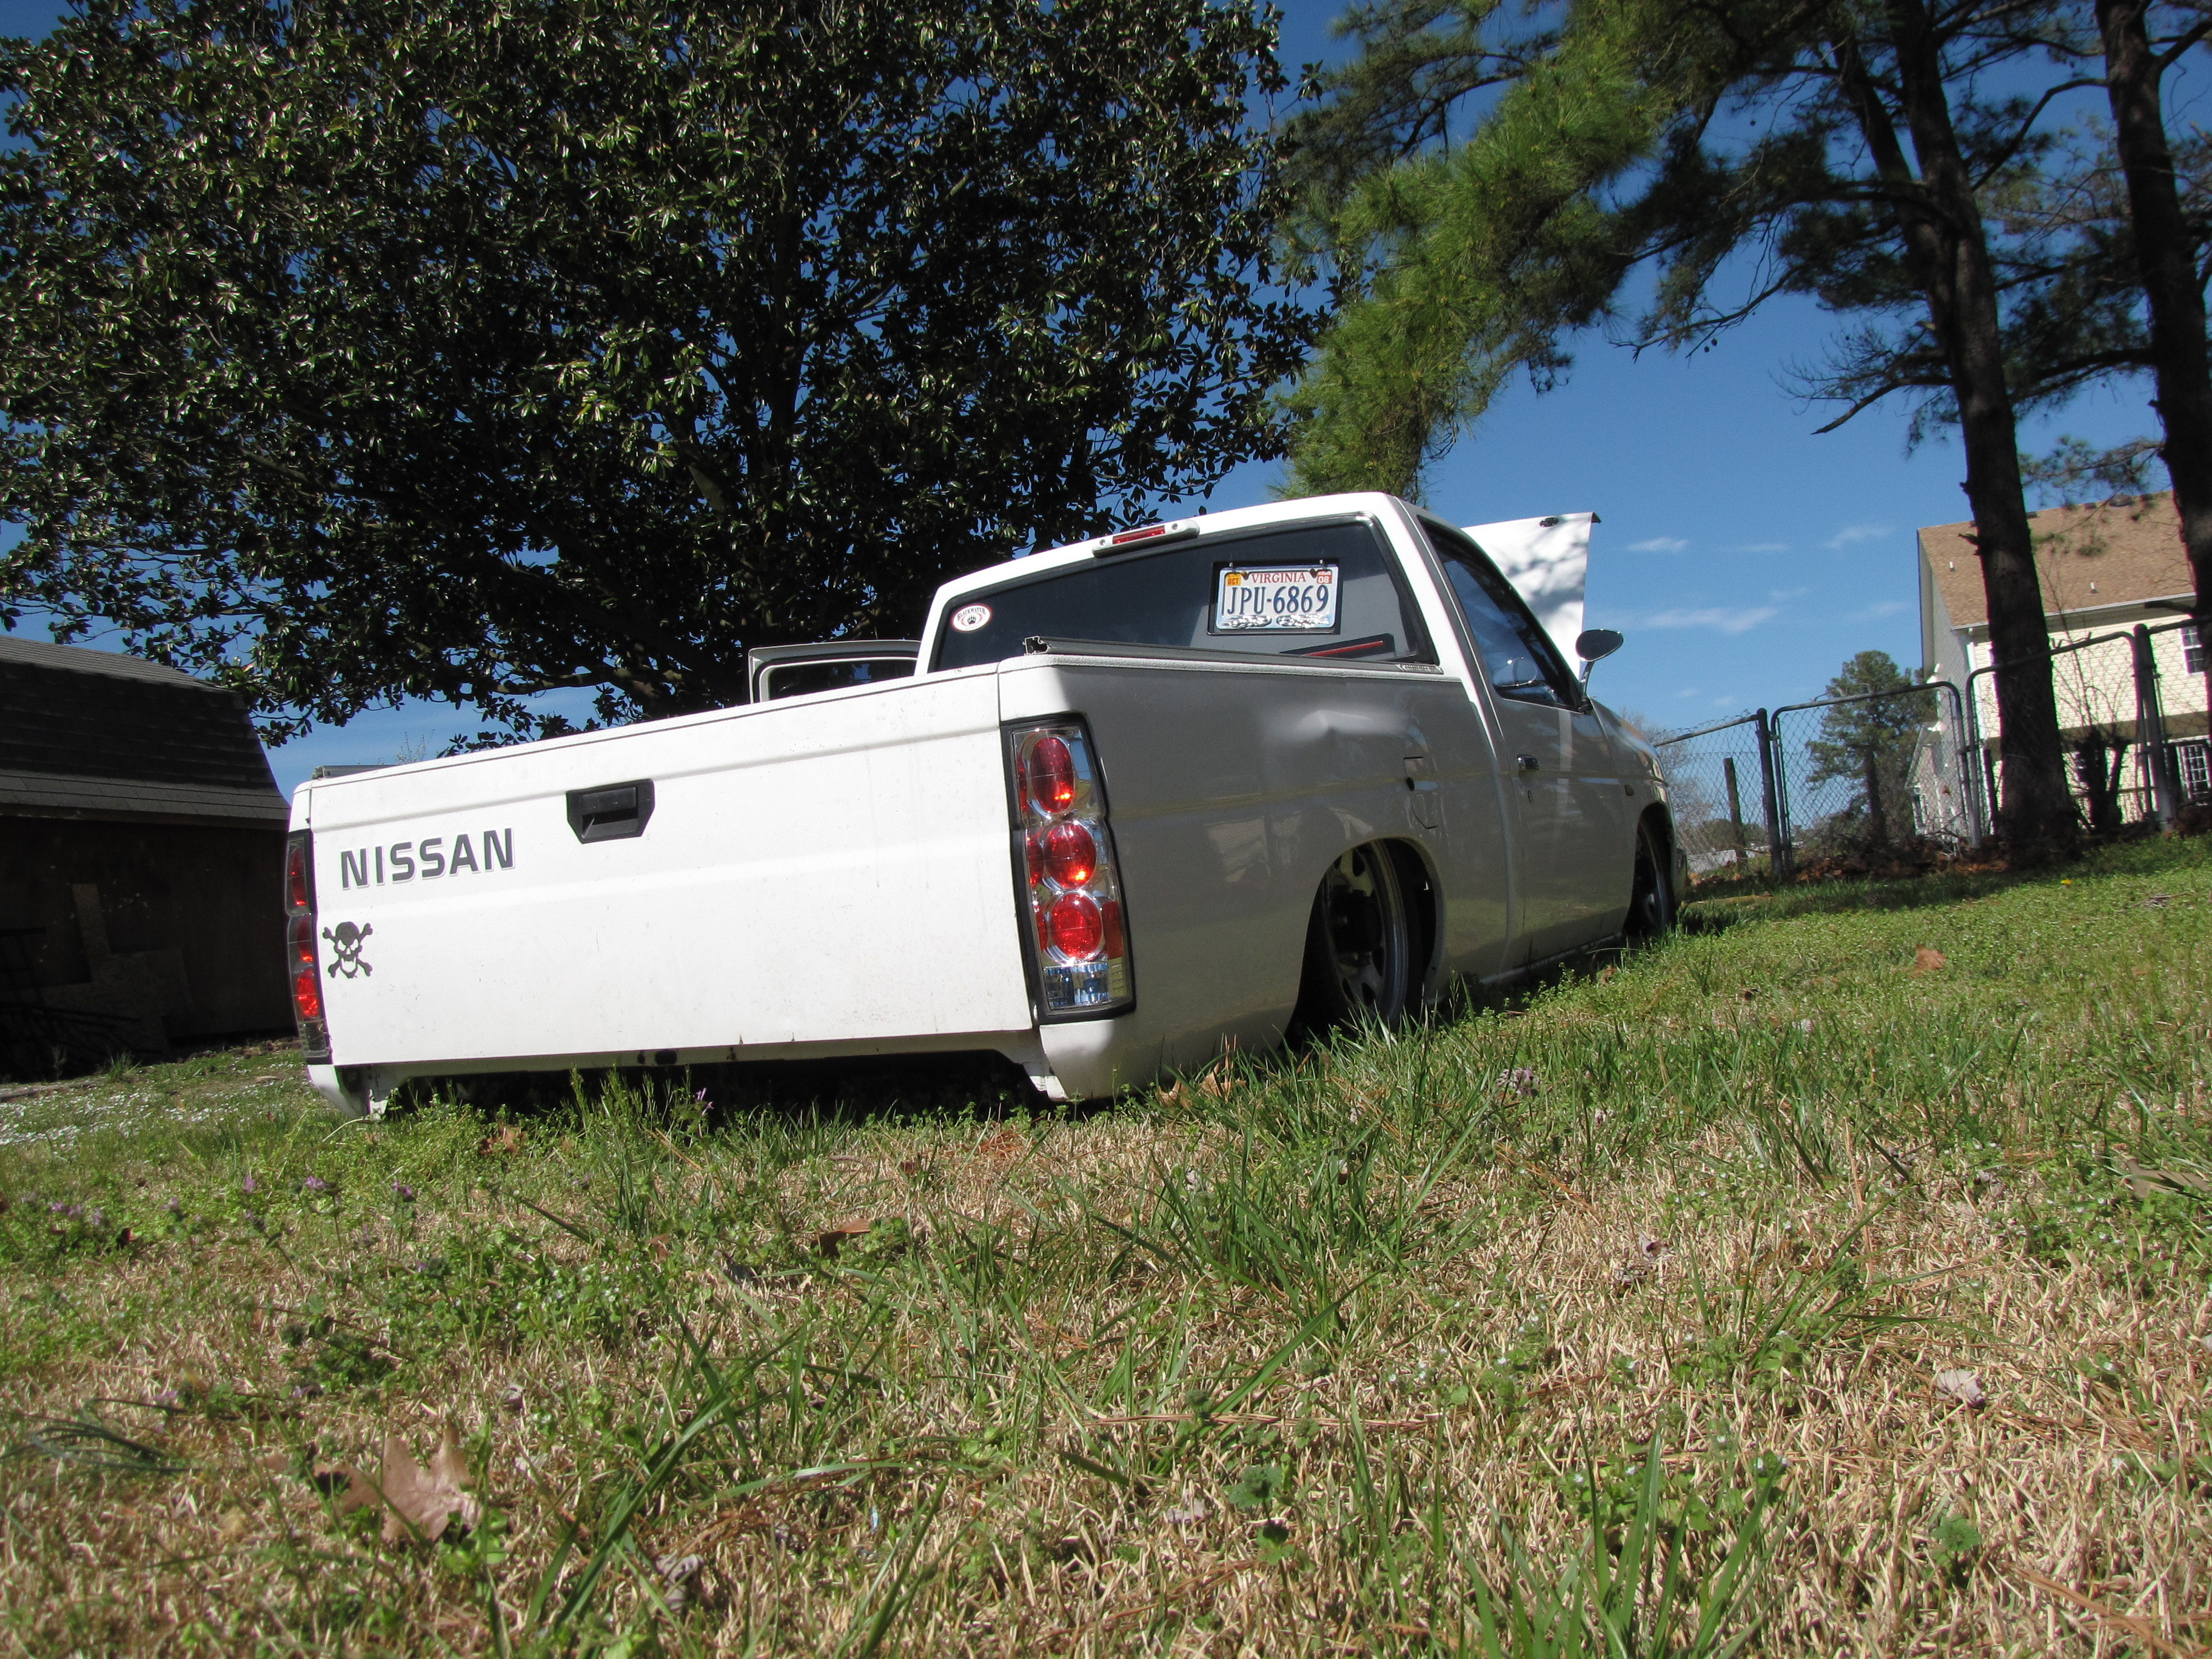 carfinder title columbia auto pickup of sc nissan salvage copart truck green cert en online auctions base on in sale lot